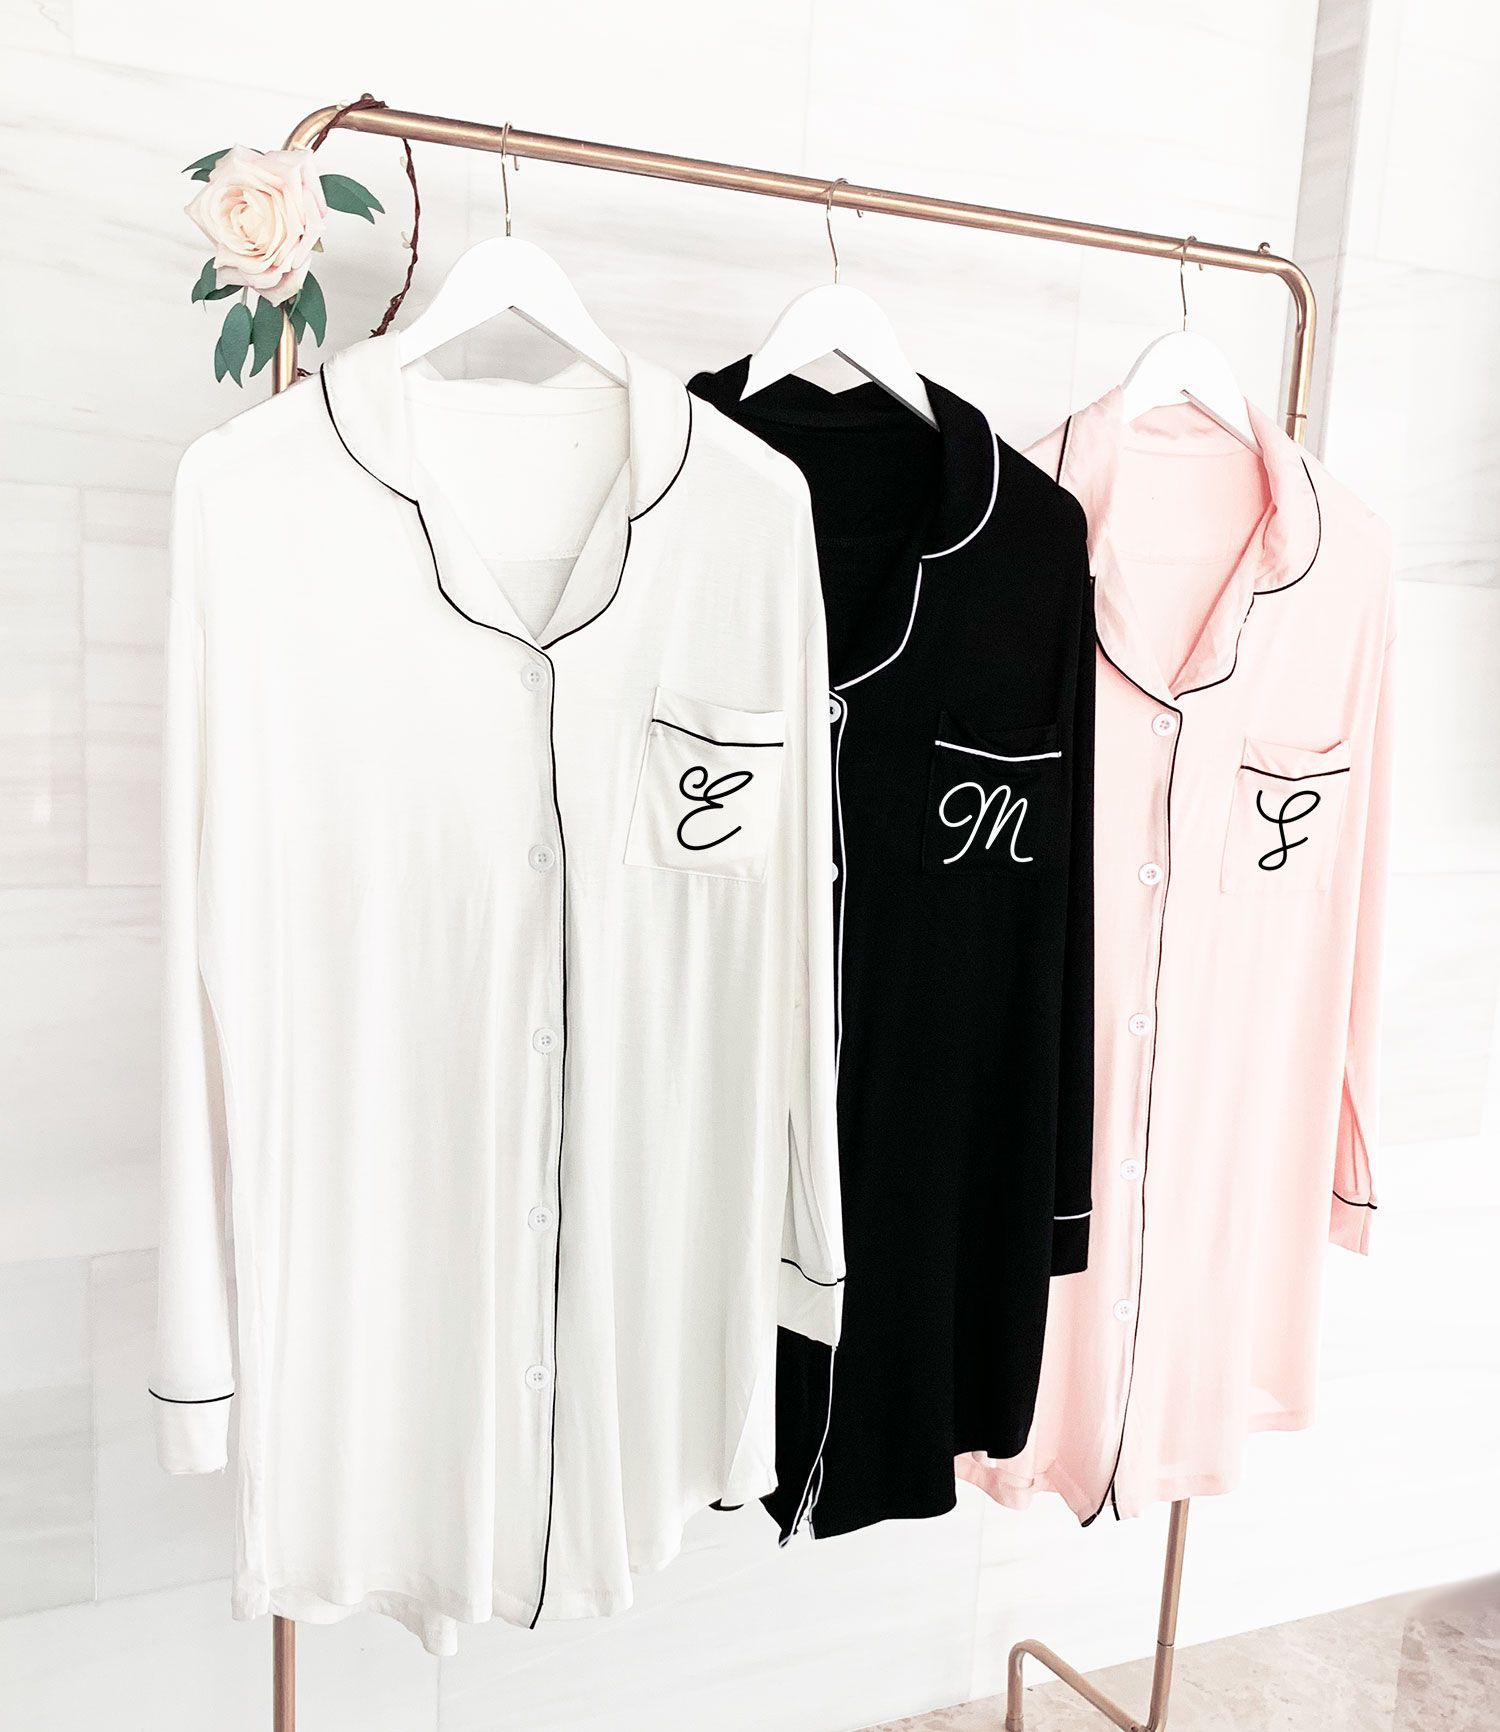 e3ee945ec9 Check out the deal on Monogram Sleep Shirt at Wedding Favorites ...